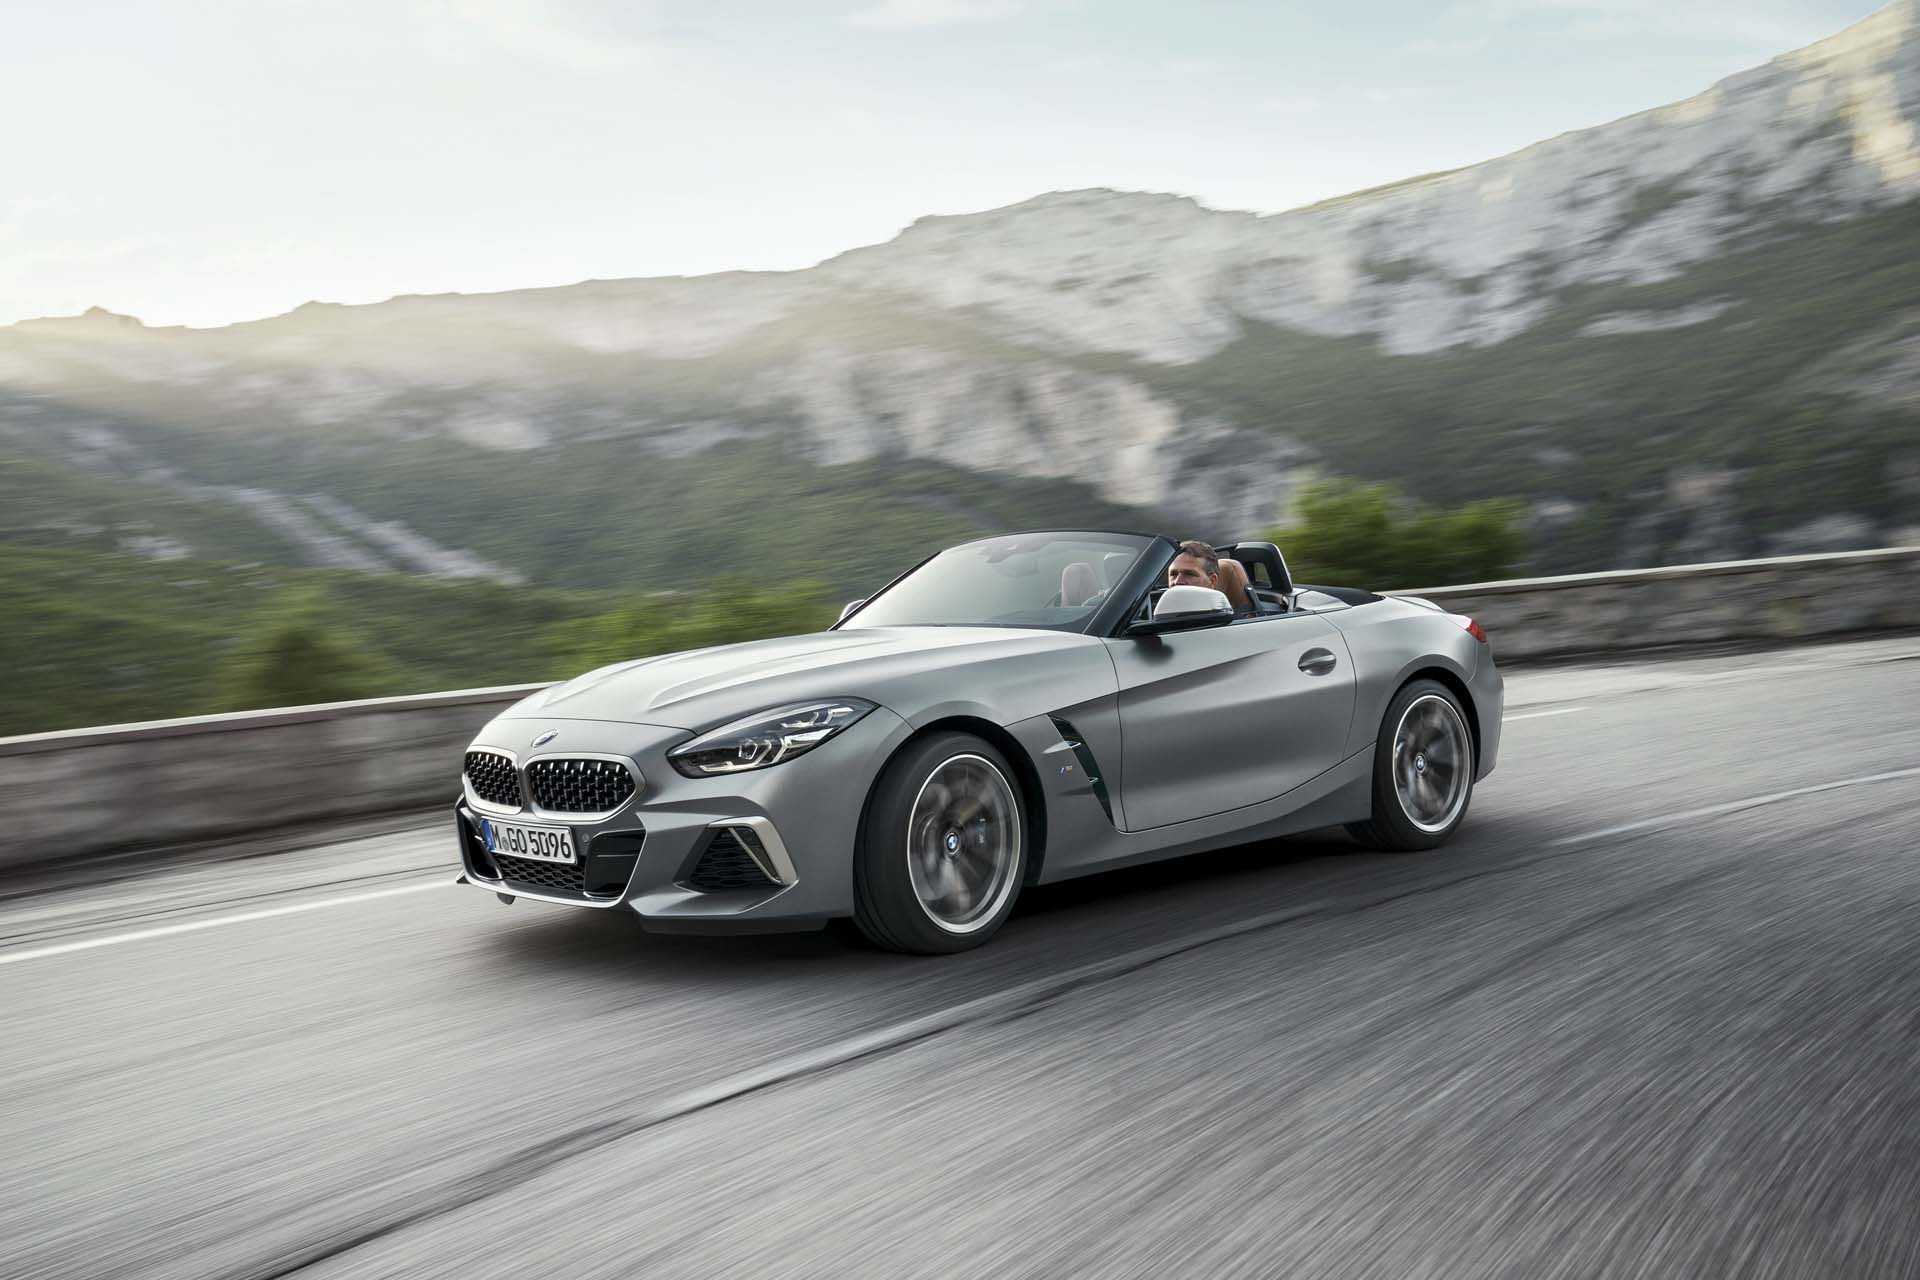 First Drive Review The 2019 Bmw Z4 Sdrive30i Revives The Roadster